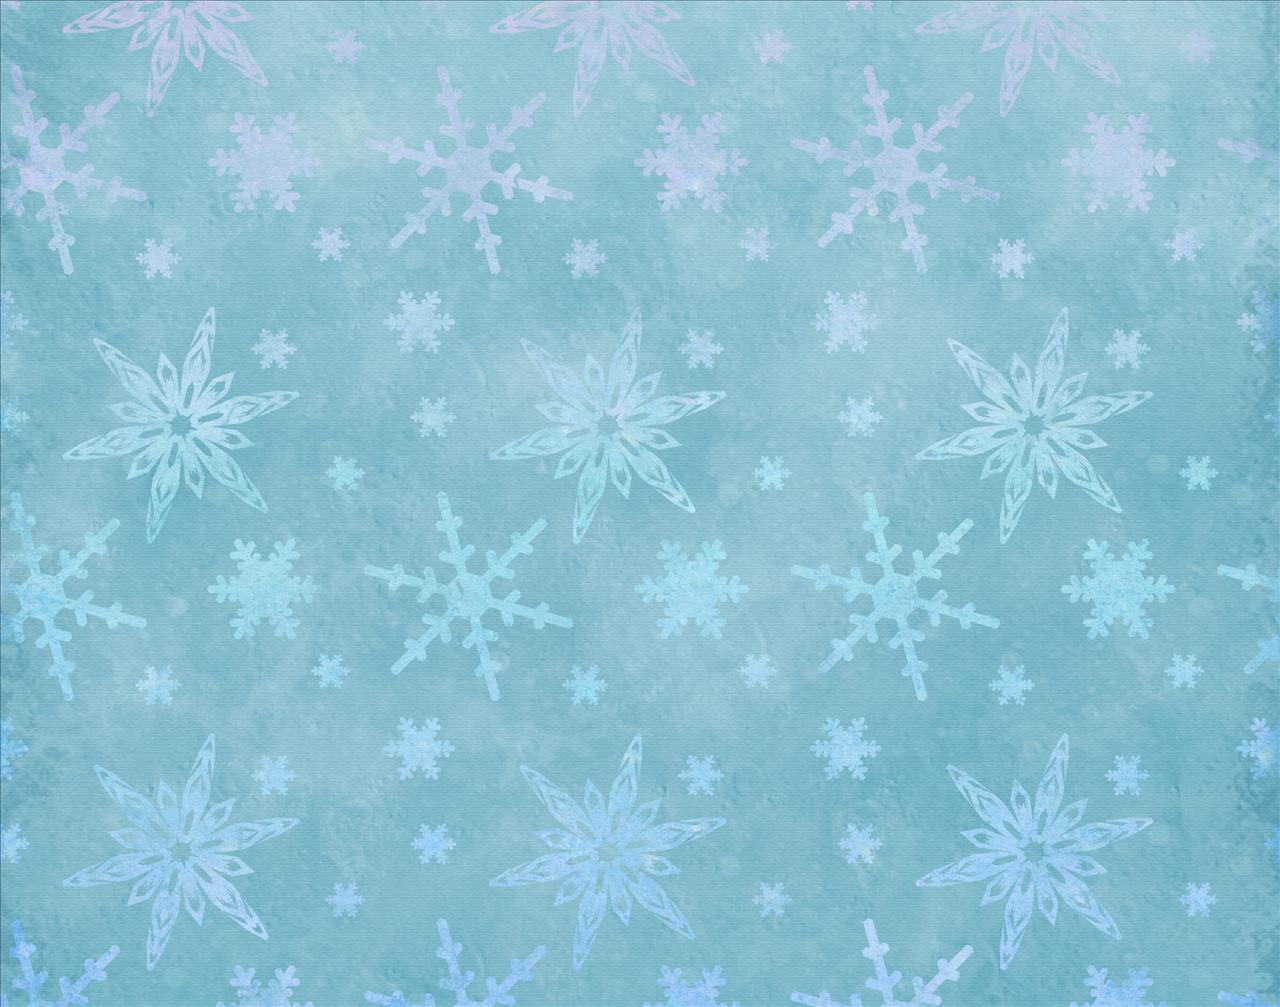 Frozen Snow with Stars Backgrounds